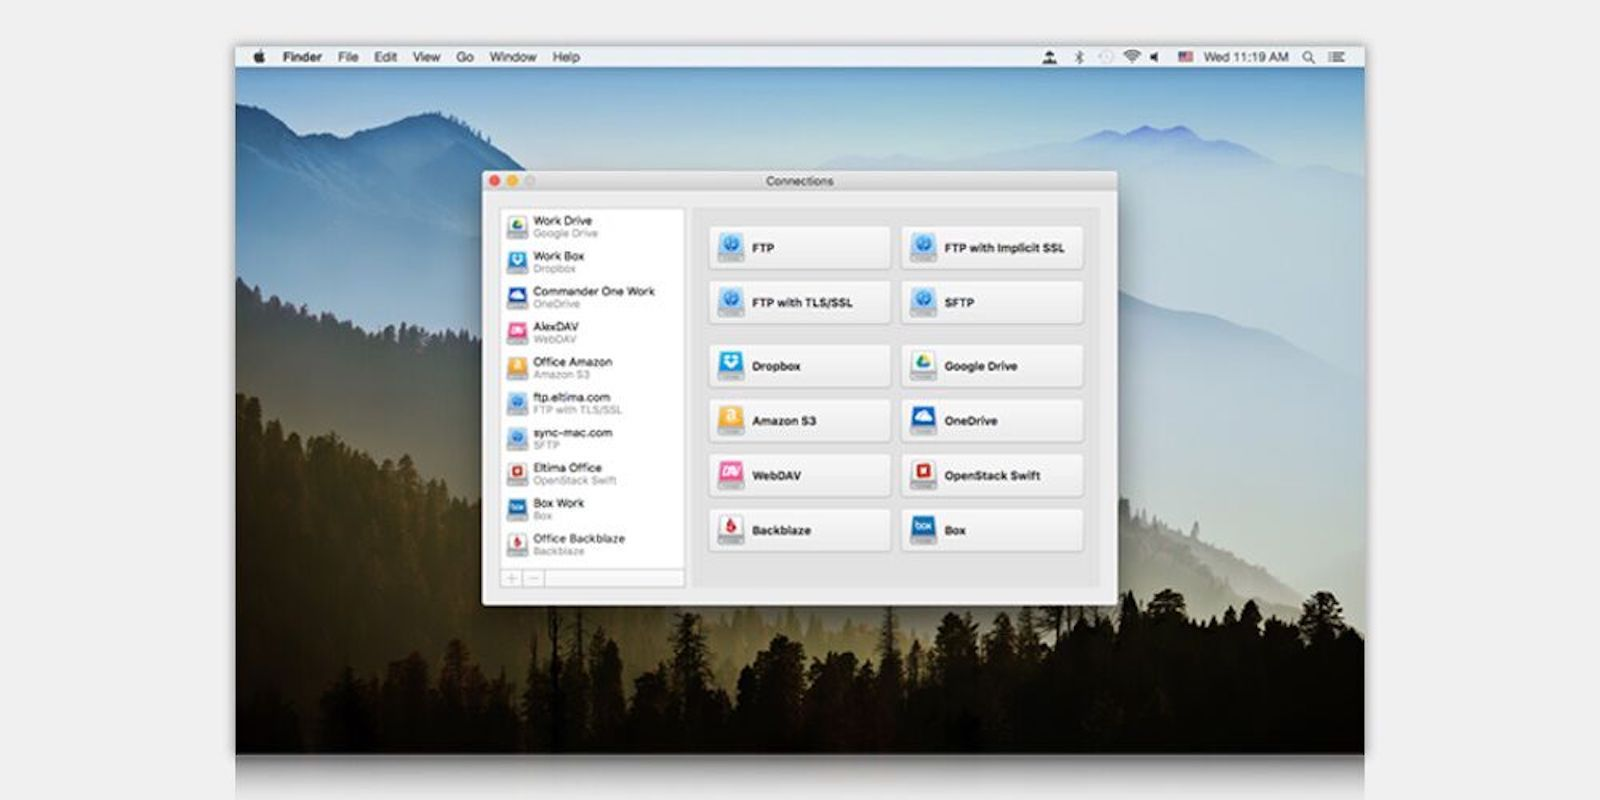 Mount cloud drives just like local ones, via drag and drop on the desktop and with Finder.